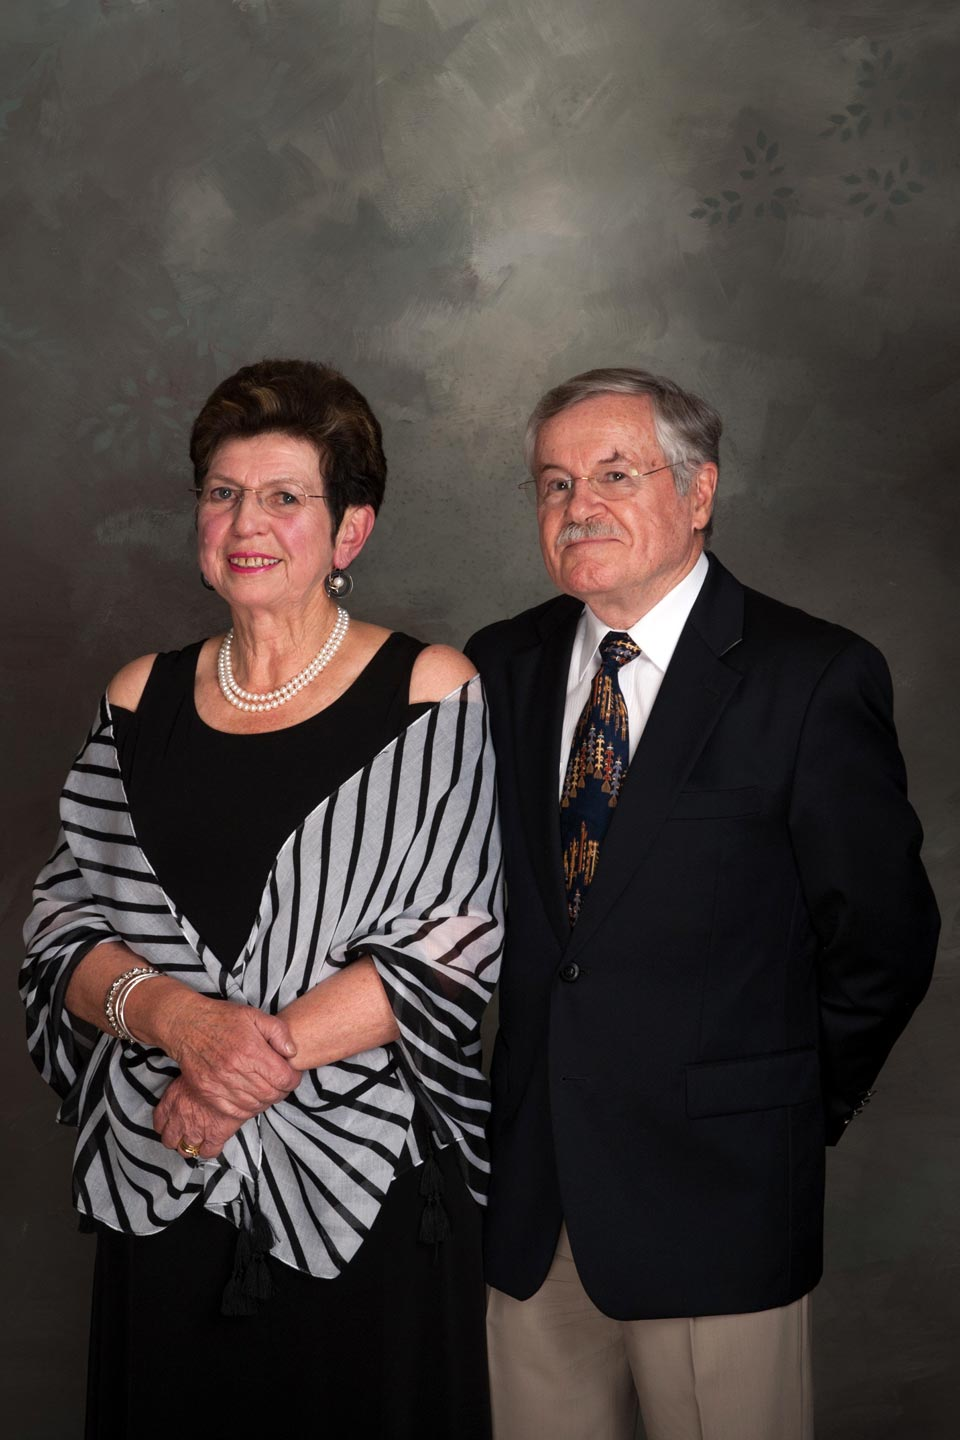 Trudi and Gunter Kaldschmidt